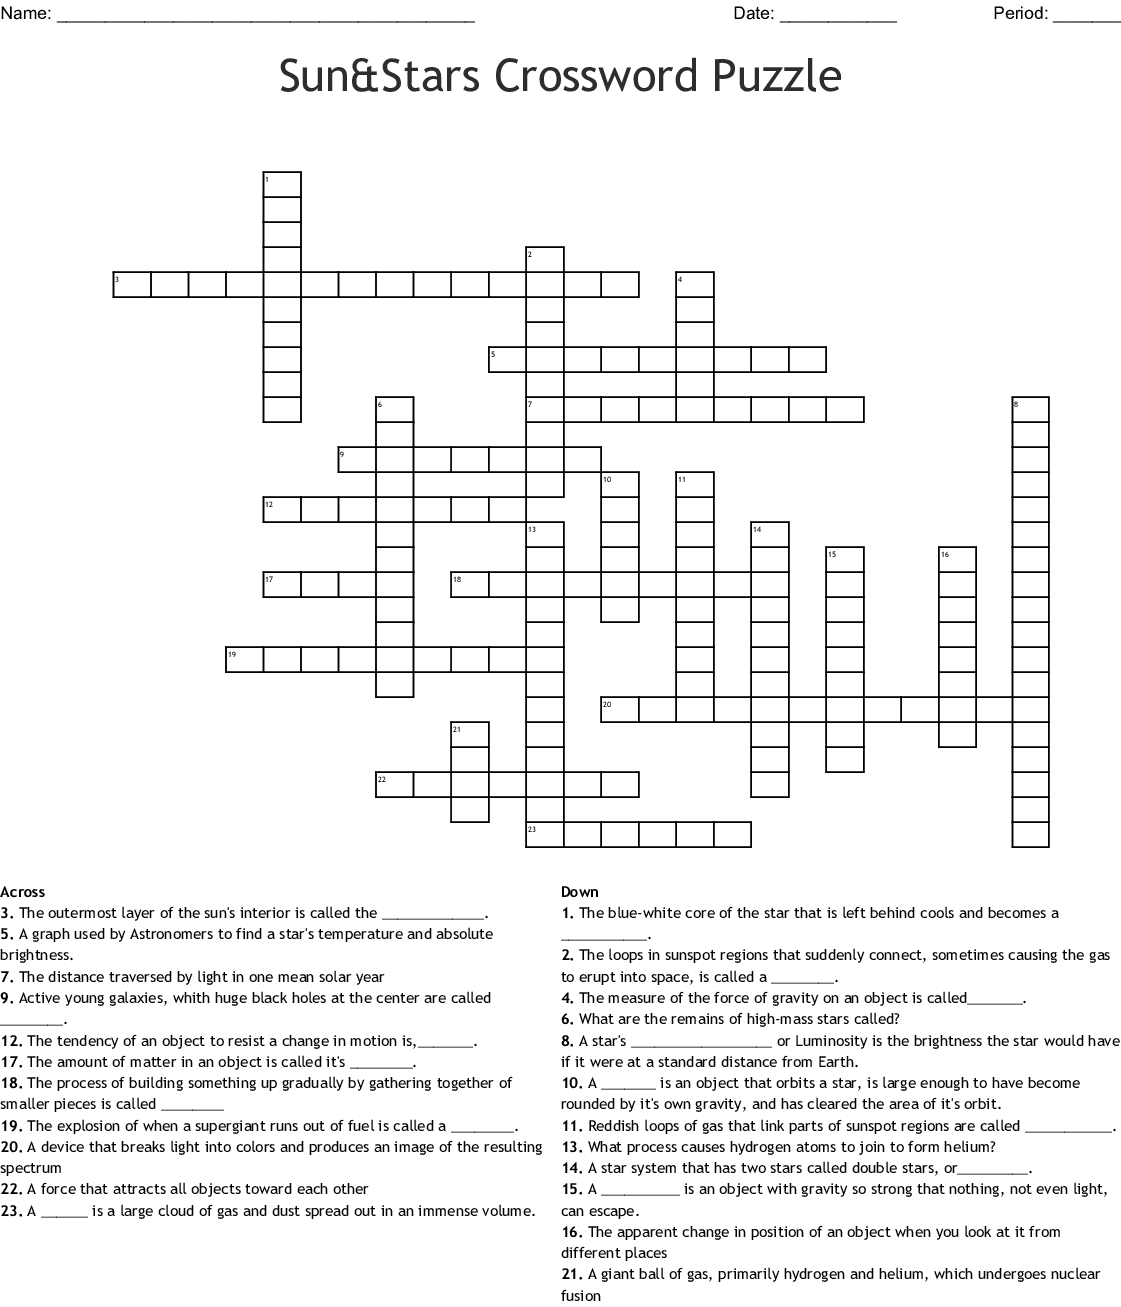 Life Cycle Of Stars Crossword